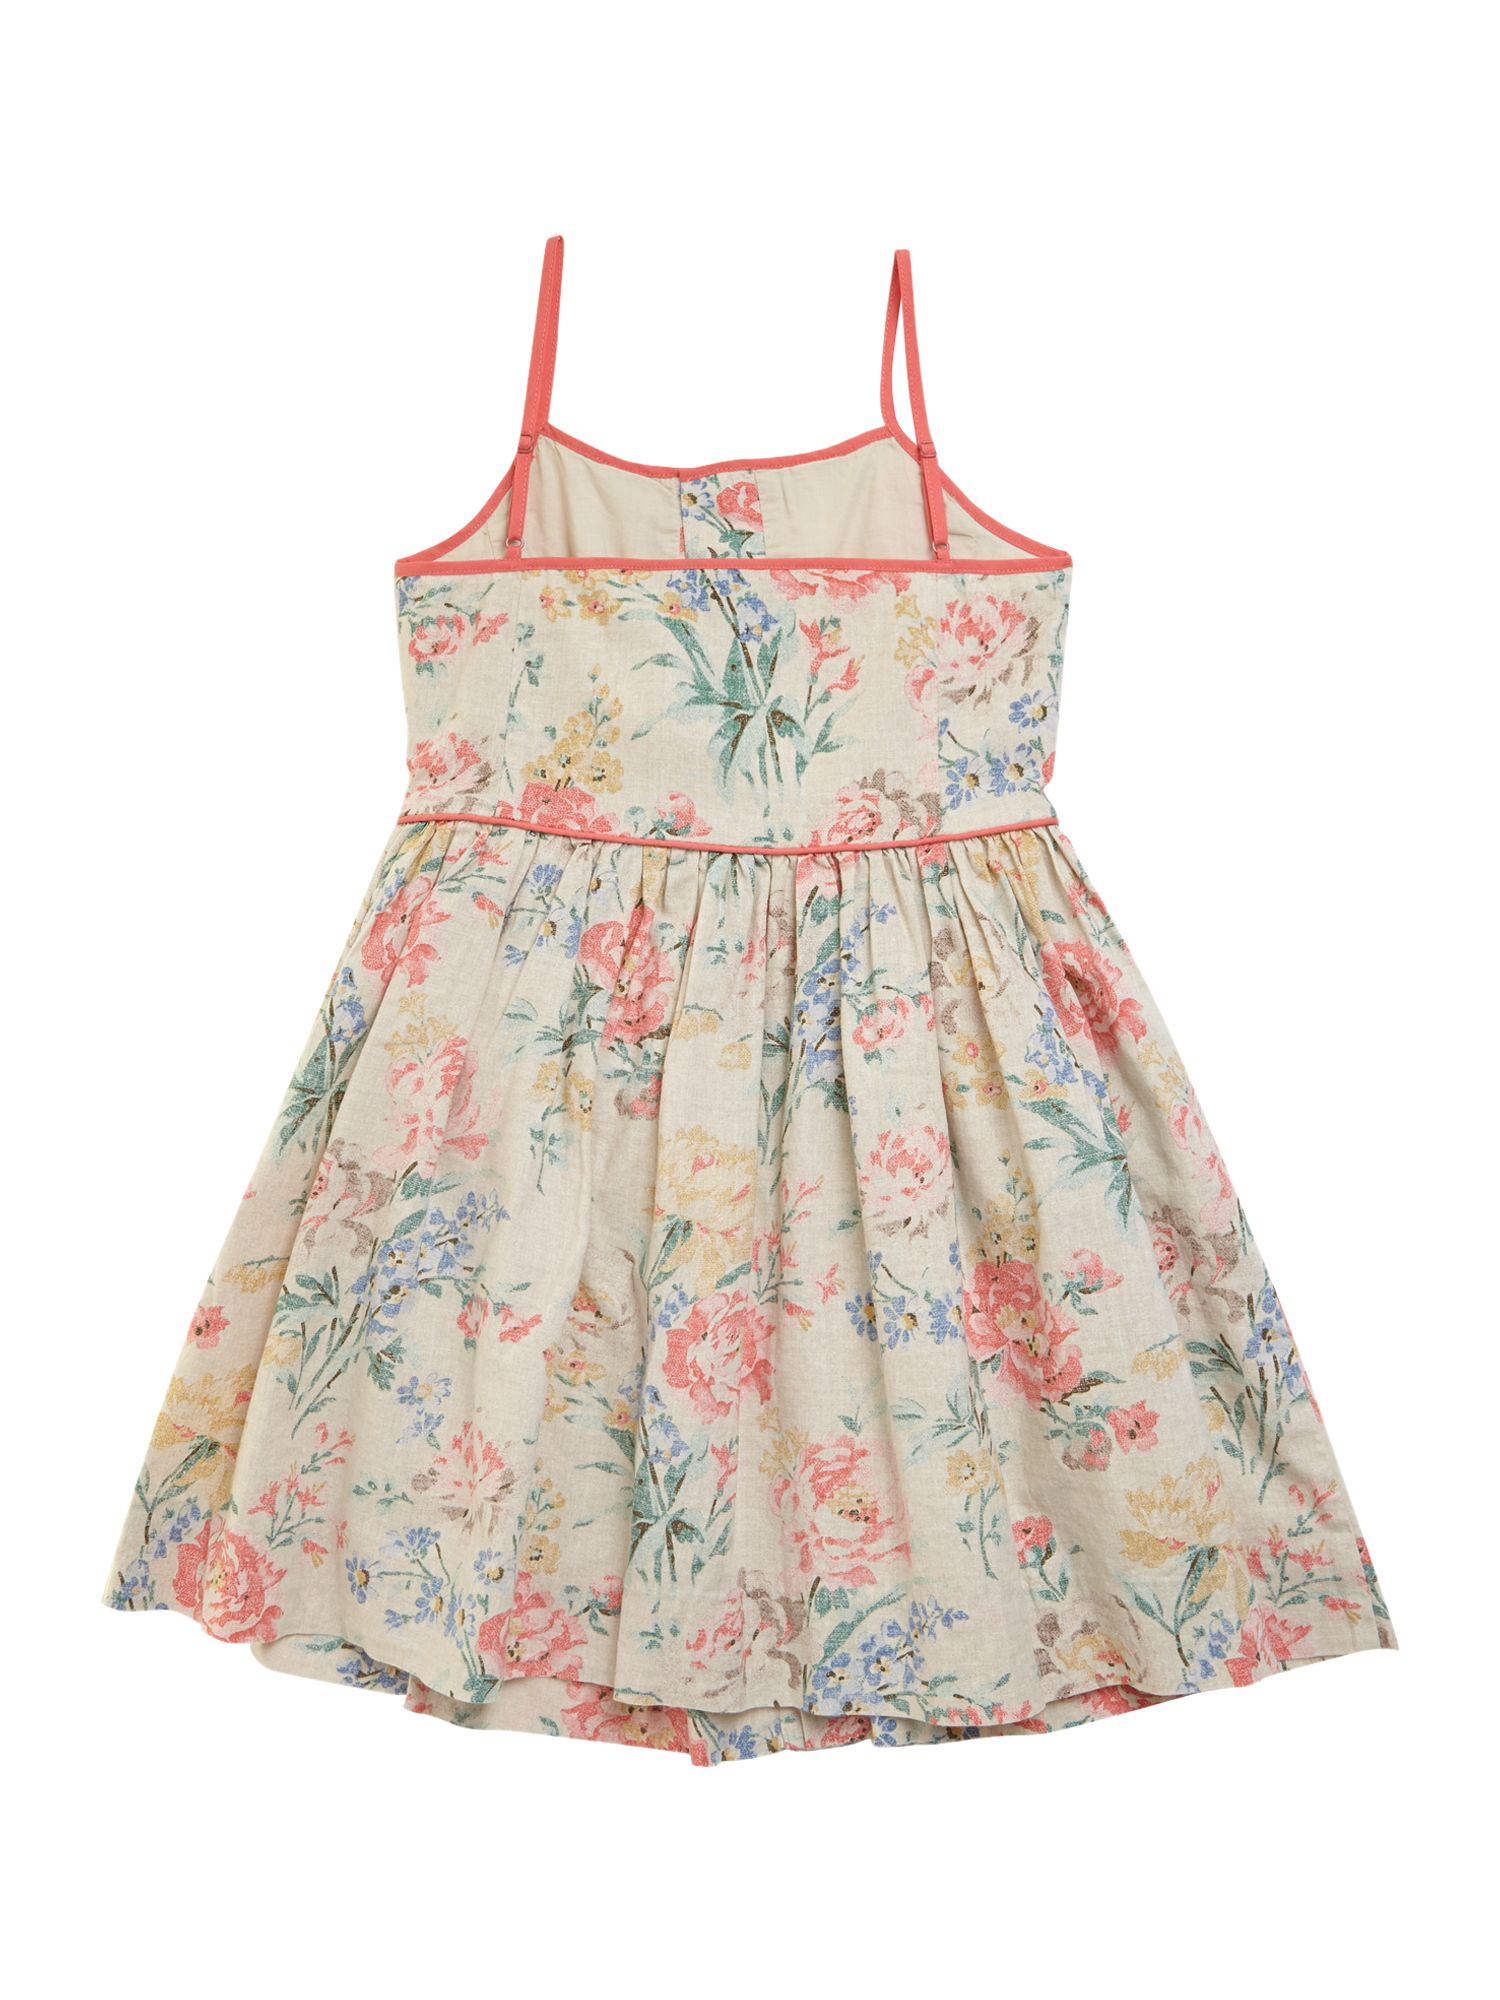 Girls vintage floral dress